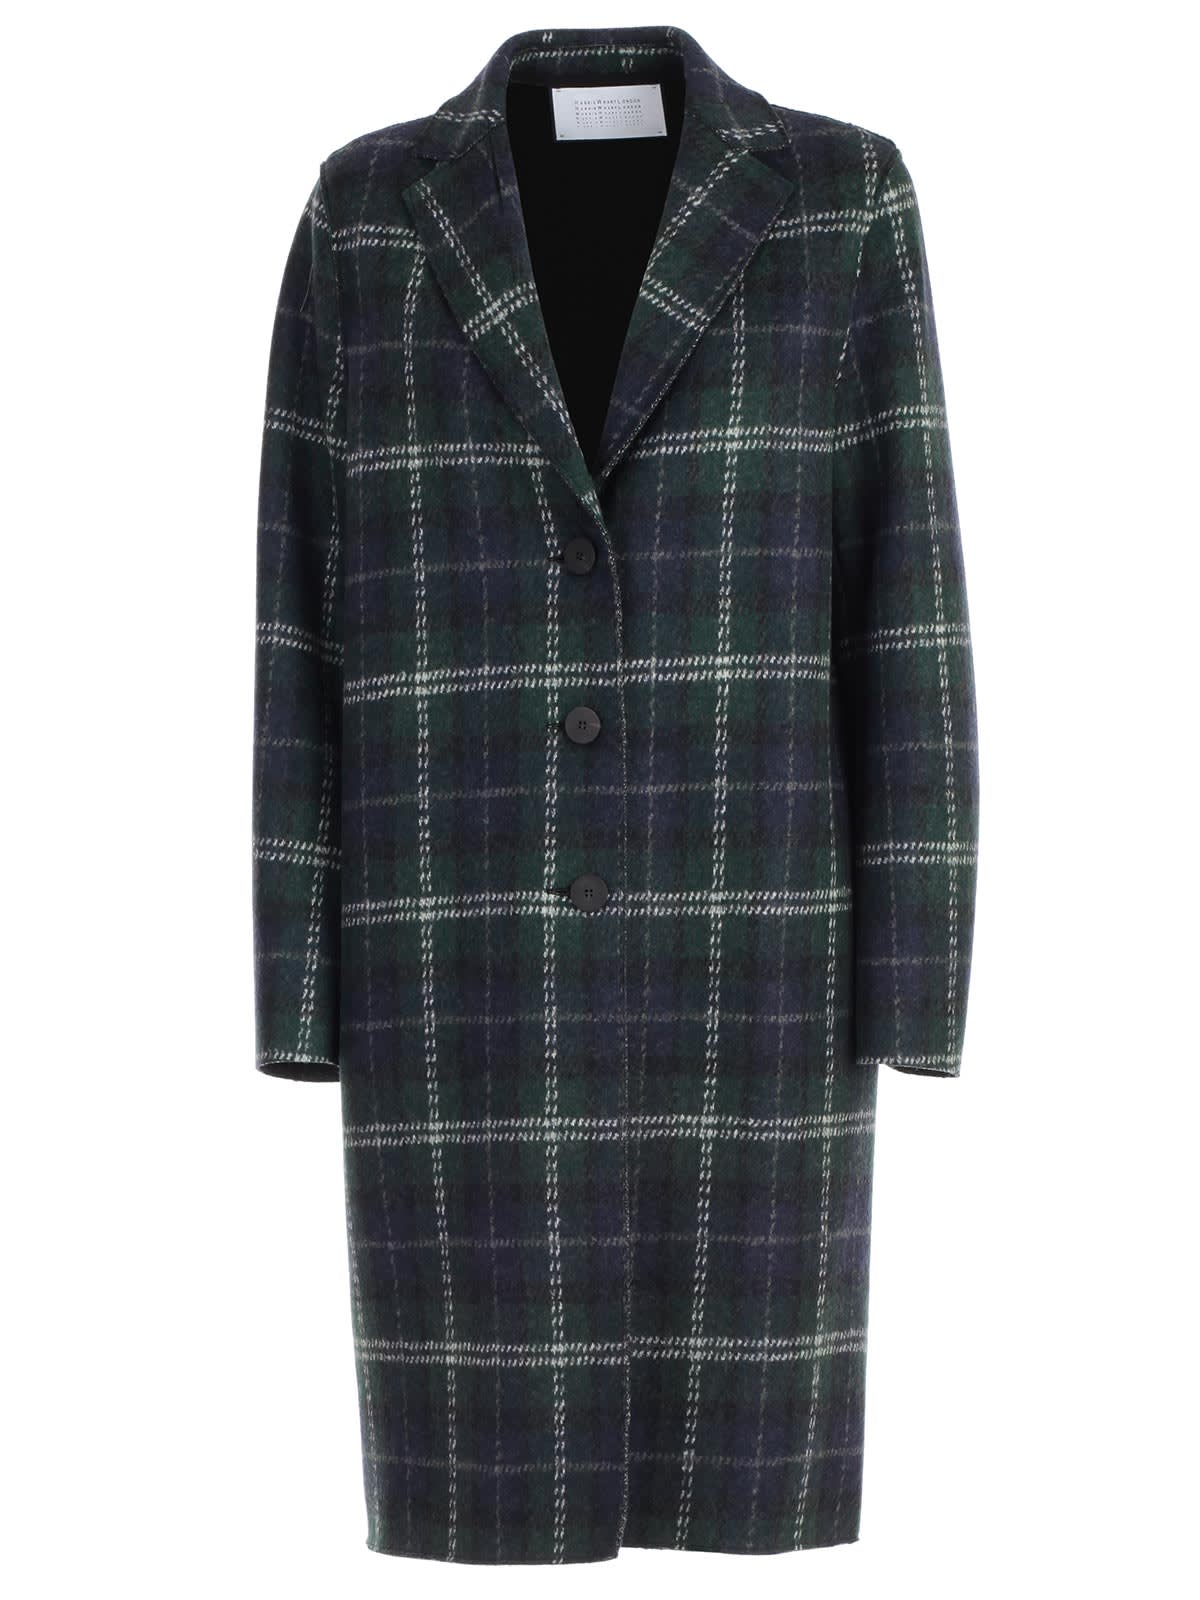 Photo of  Harris Wharf London Coat Oversized- shop Harris Wharf London jackets online sales